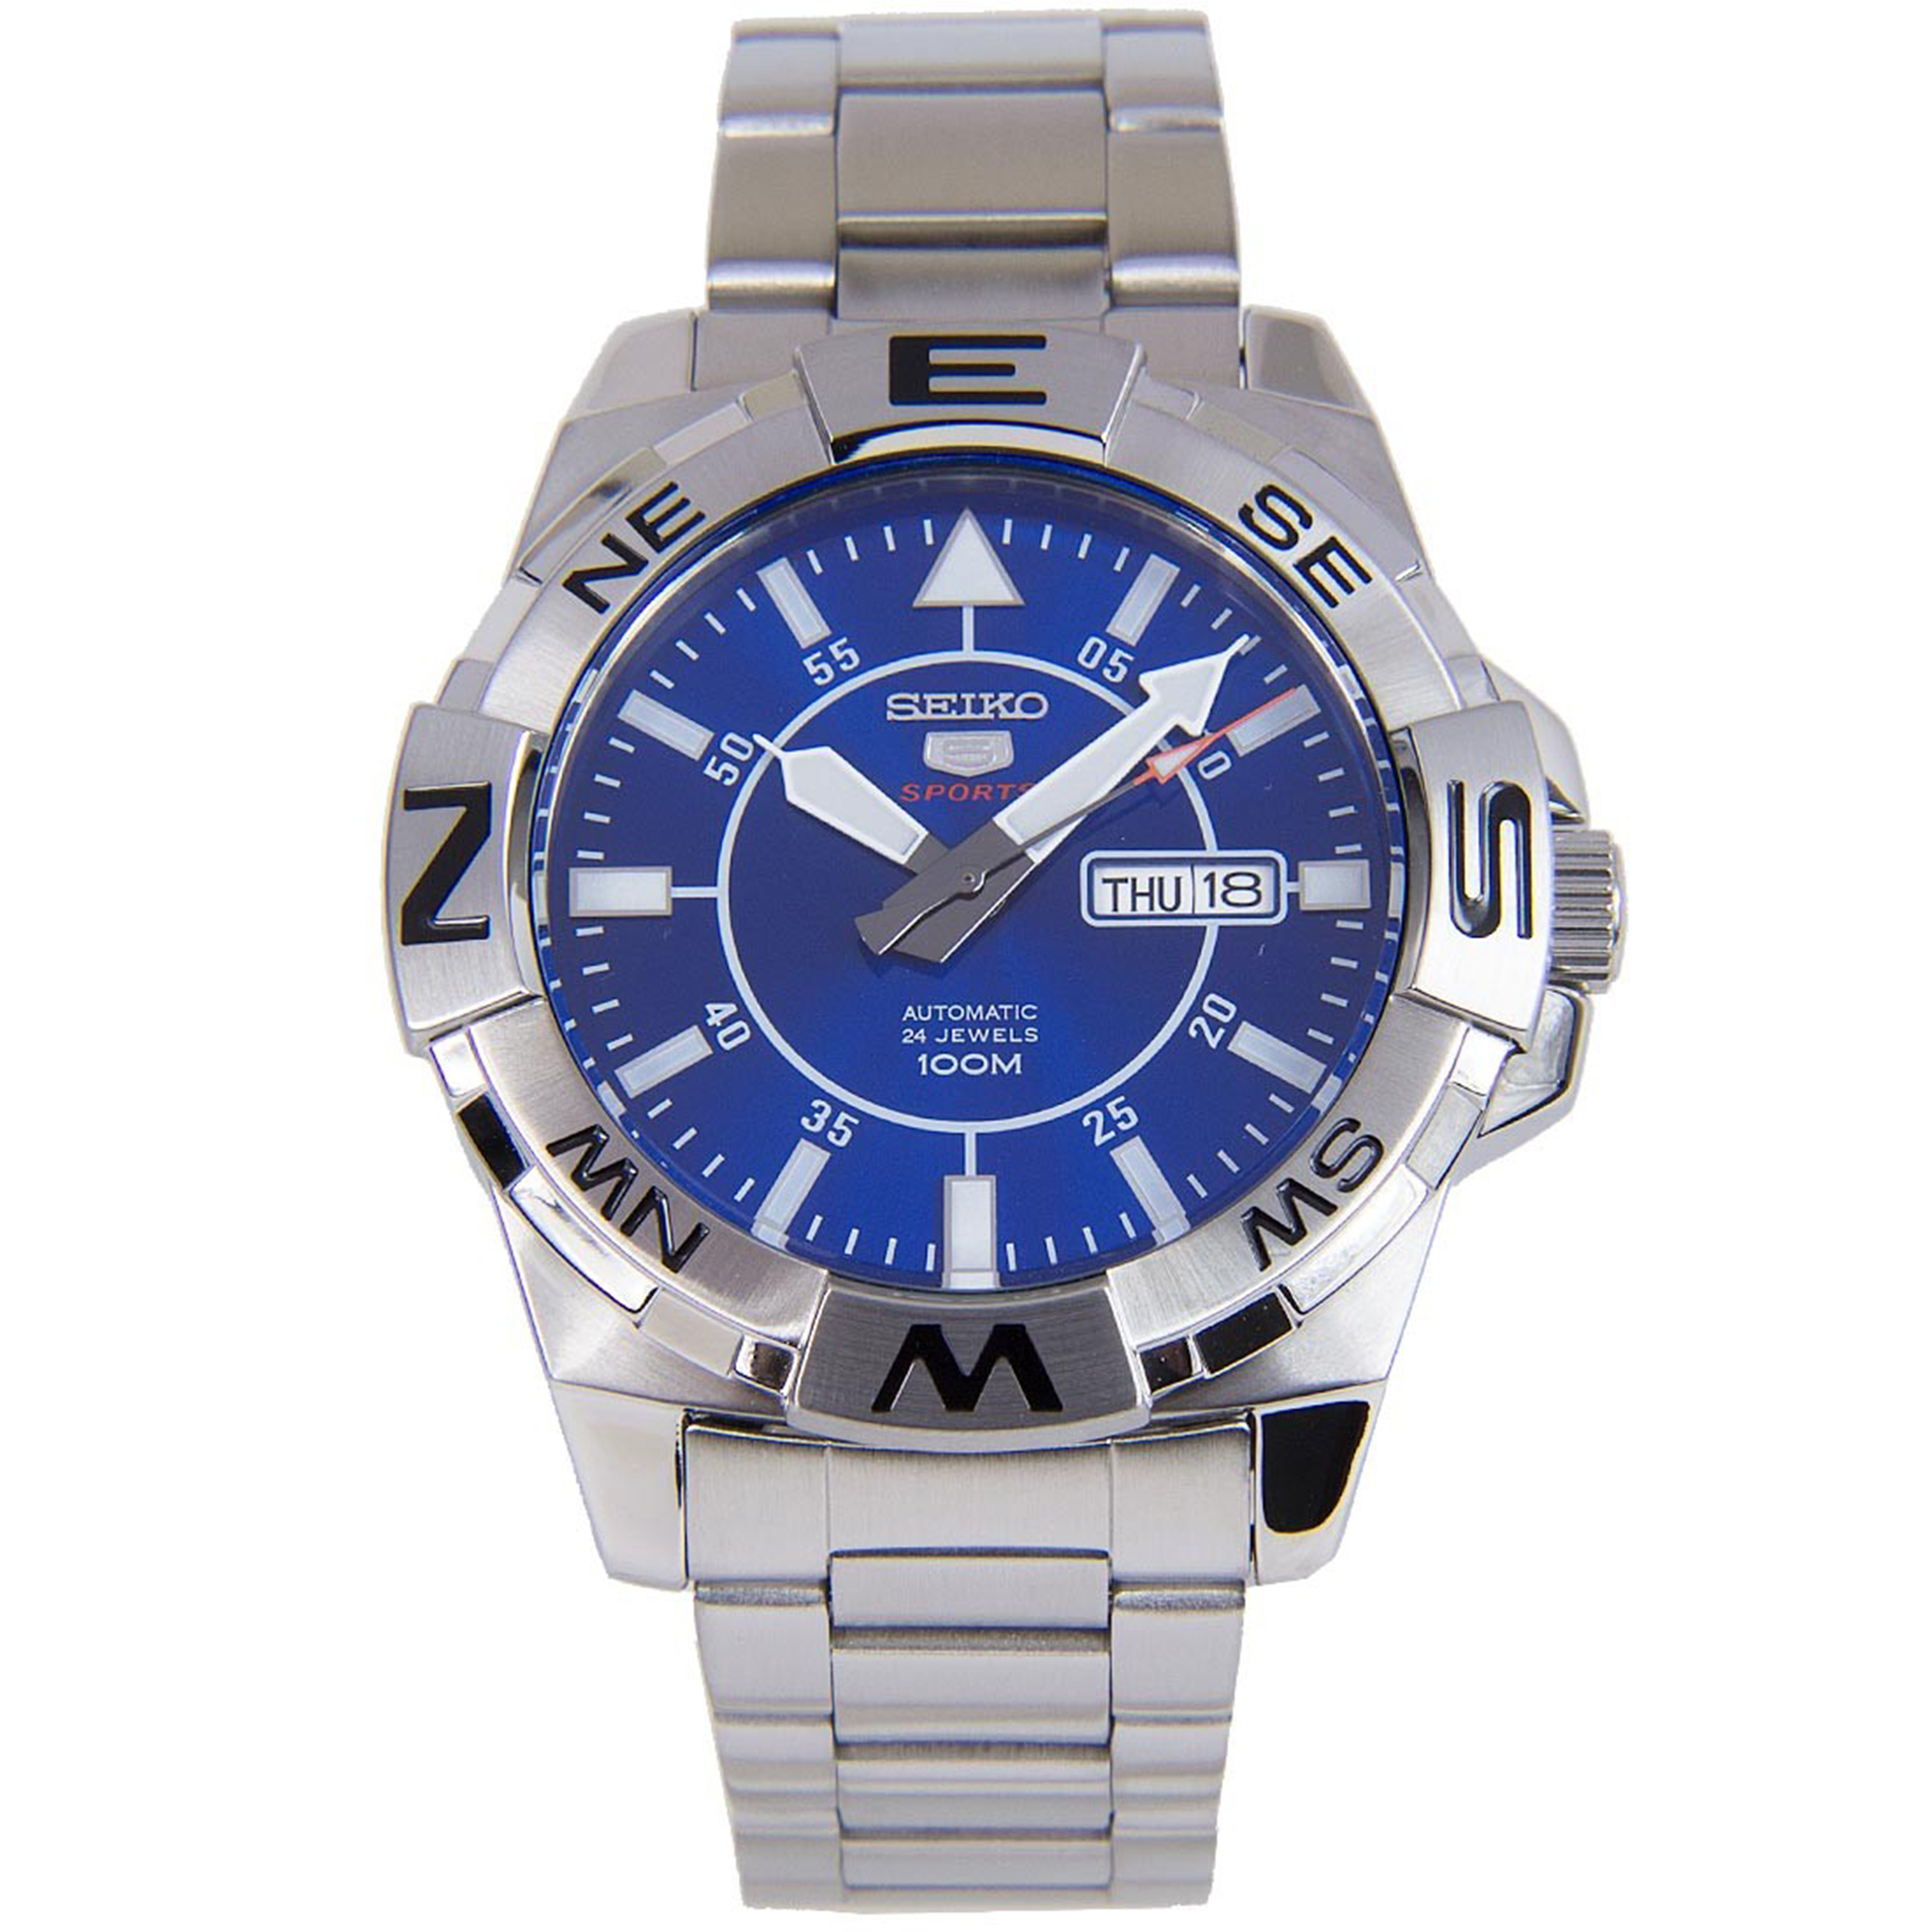 Seiko SE-SRPA61 Seiko Automatic Compass Diver Stainless Steel Blue Dial Glassback